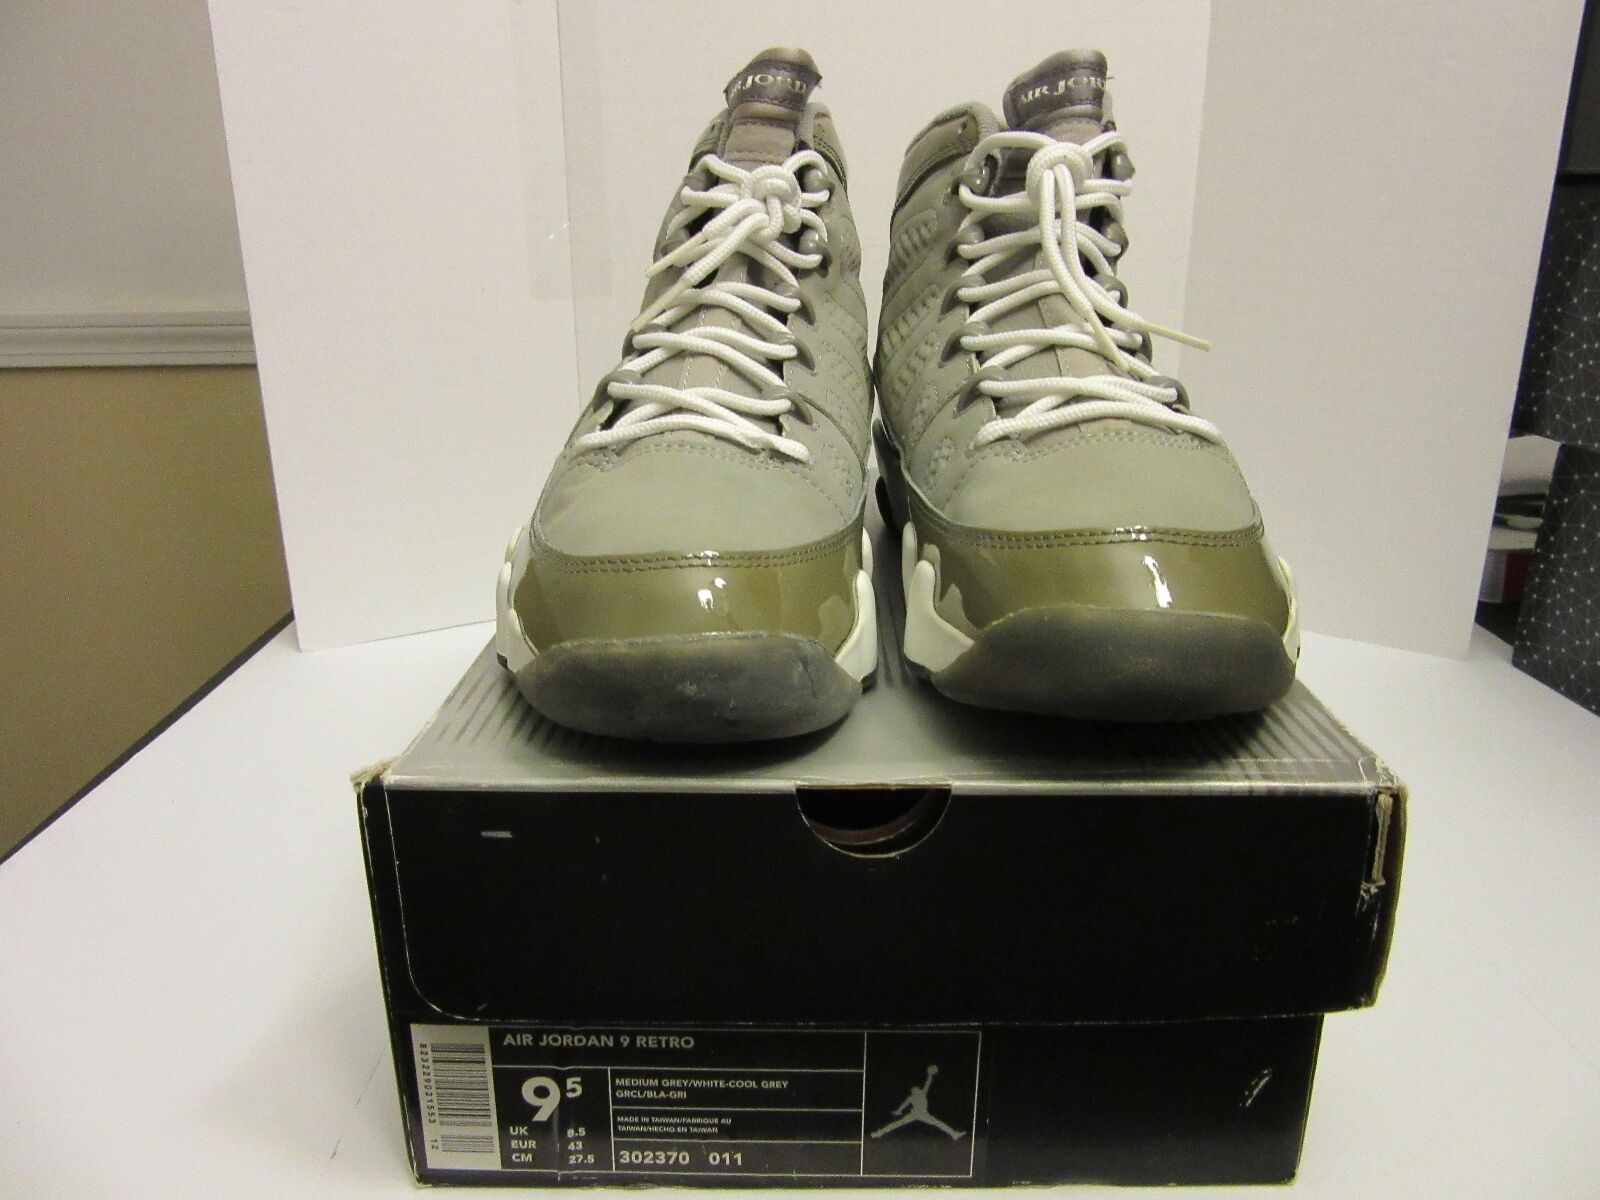 RETRO RETRO RETRO AIR JORDAN 9 COOL grigio (2002) 100% AUTHENTIC 6dbbf9